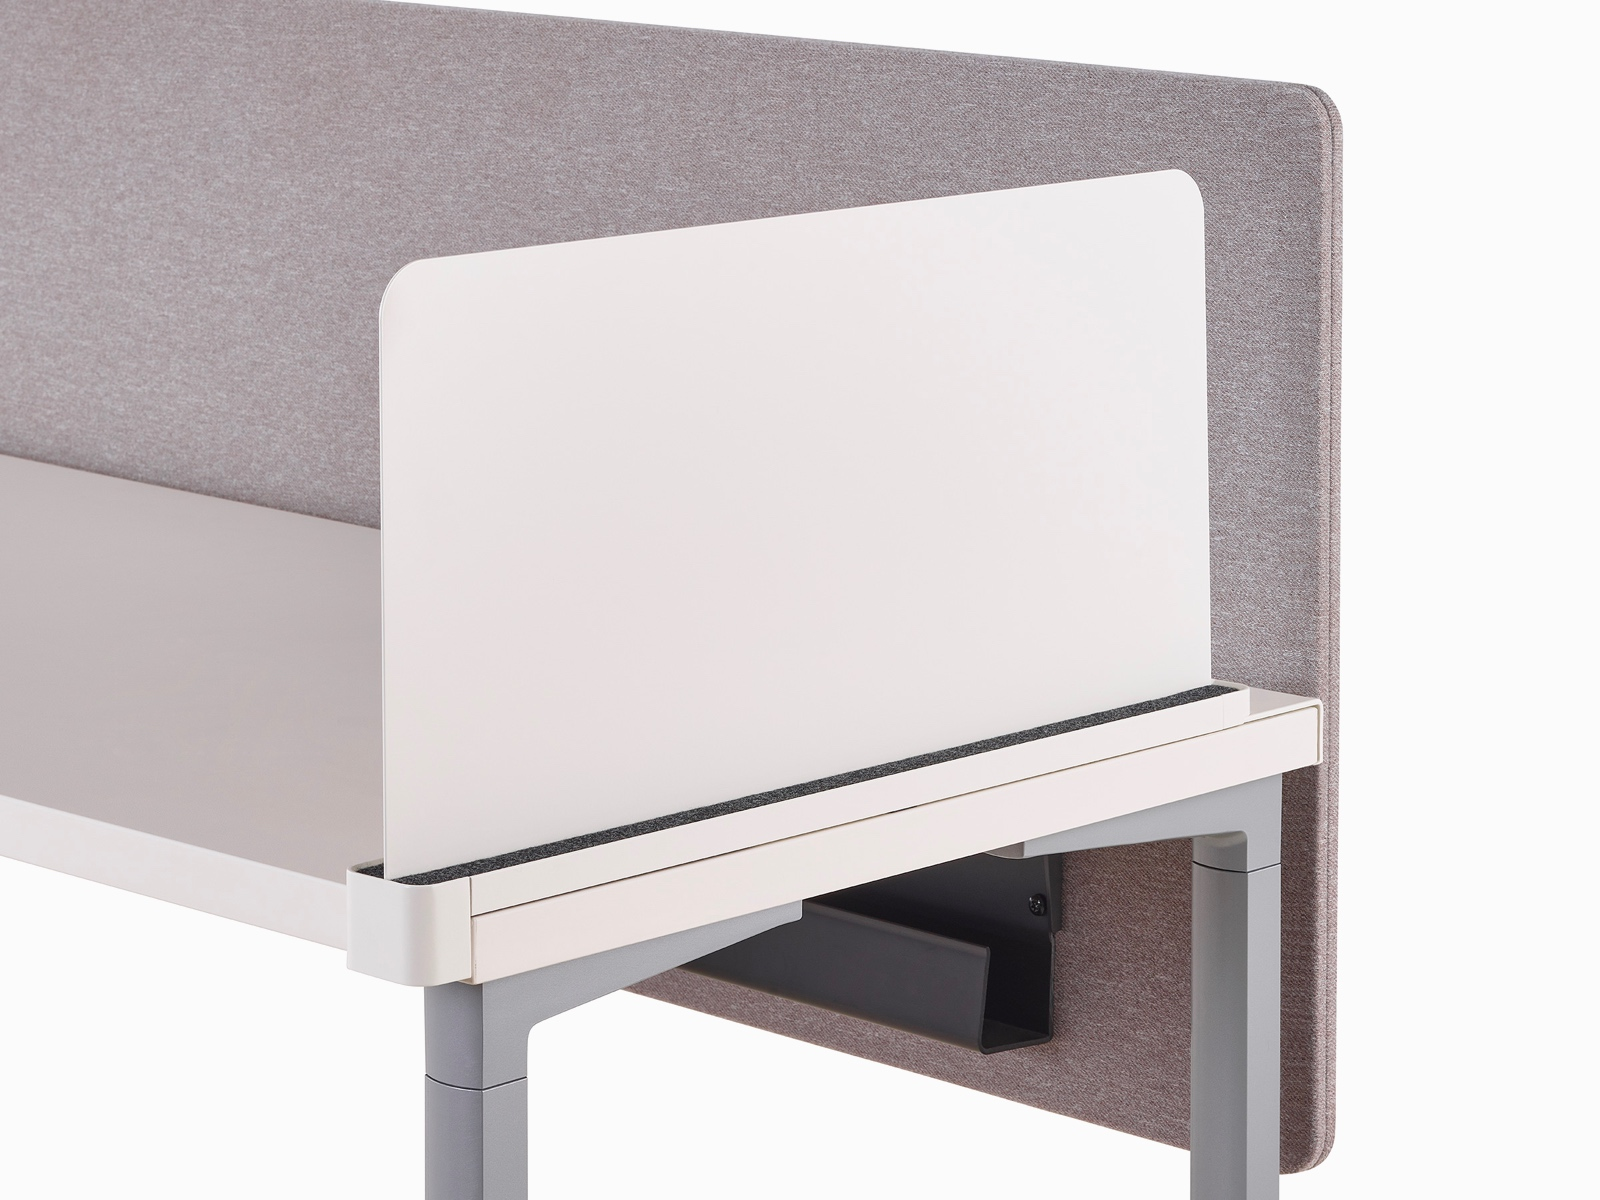 Close-up of a white Ubi slim metal delineation side screen with a cable trough found attached to a privacy screen beneath an Everywhere Table.